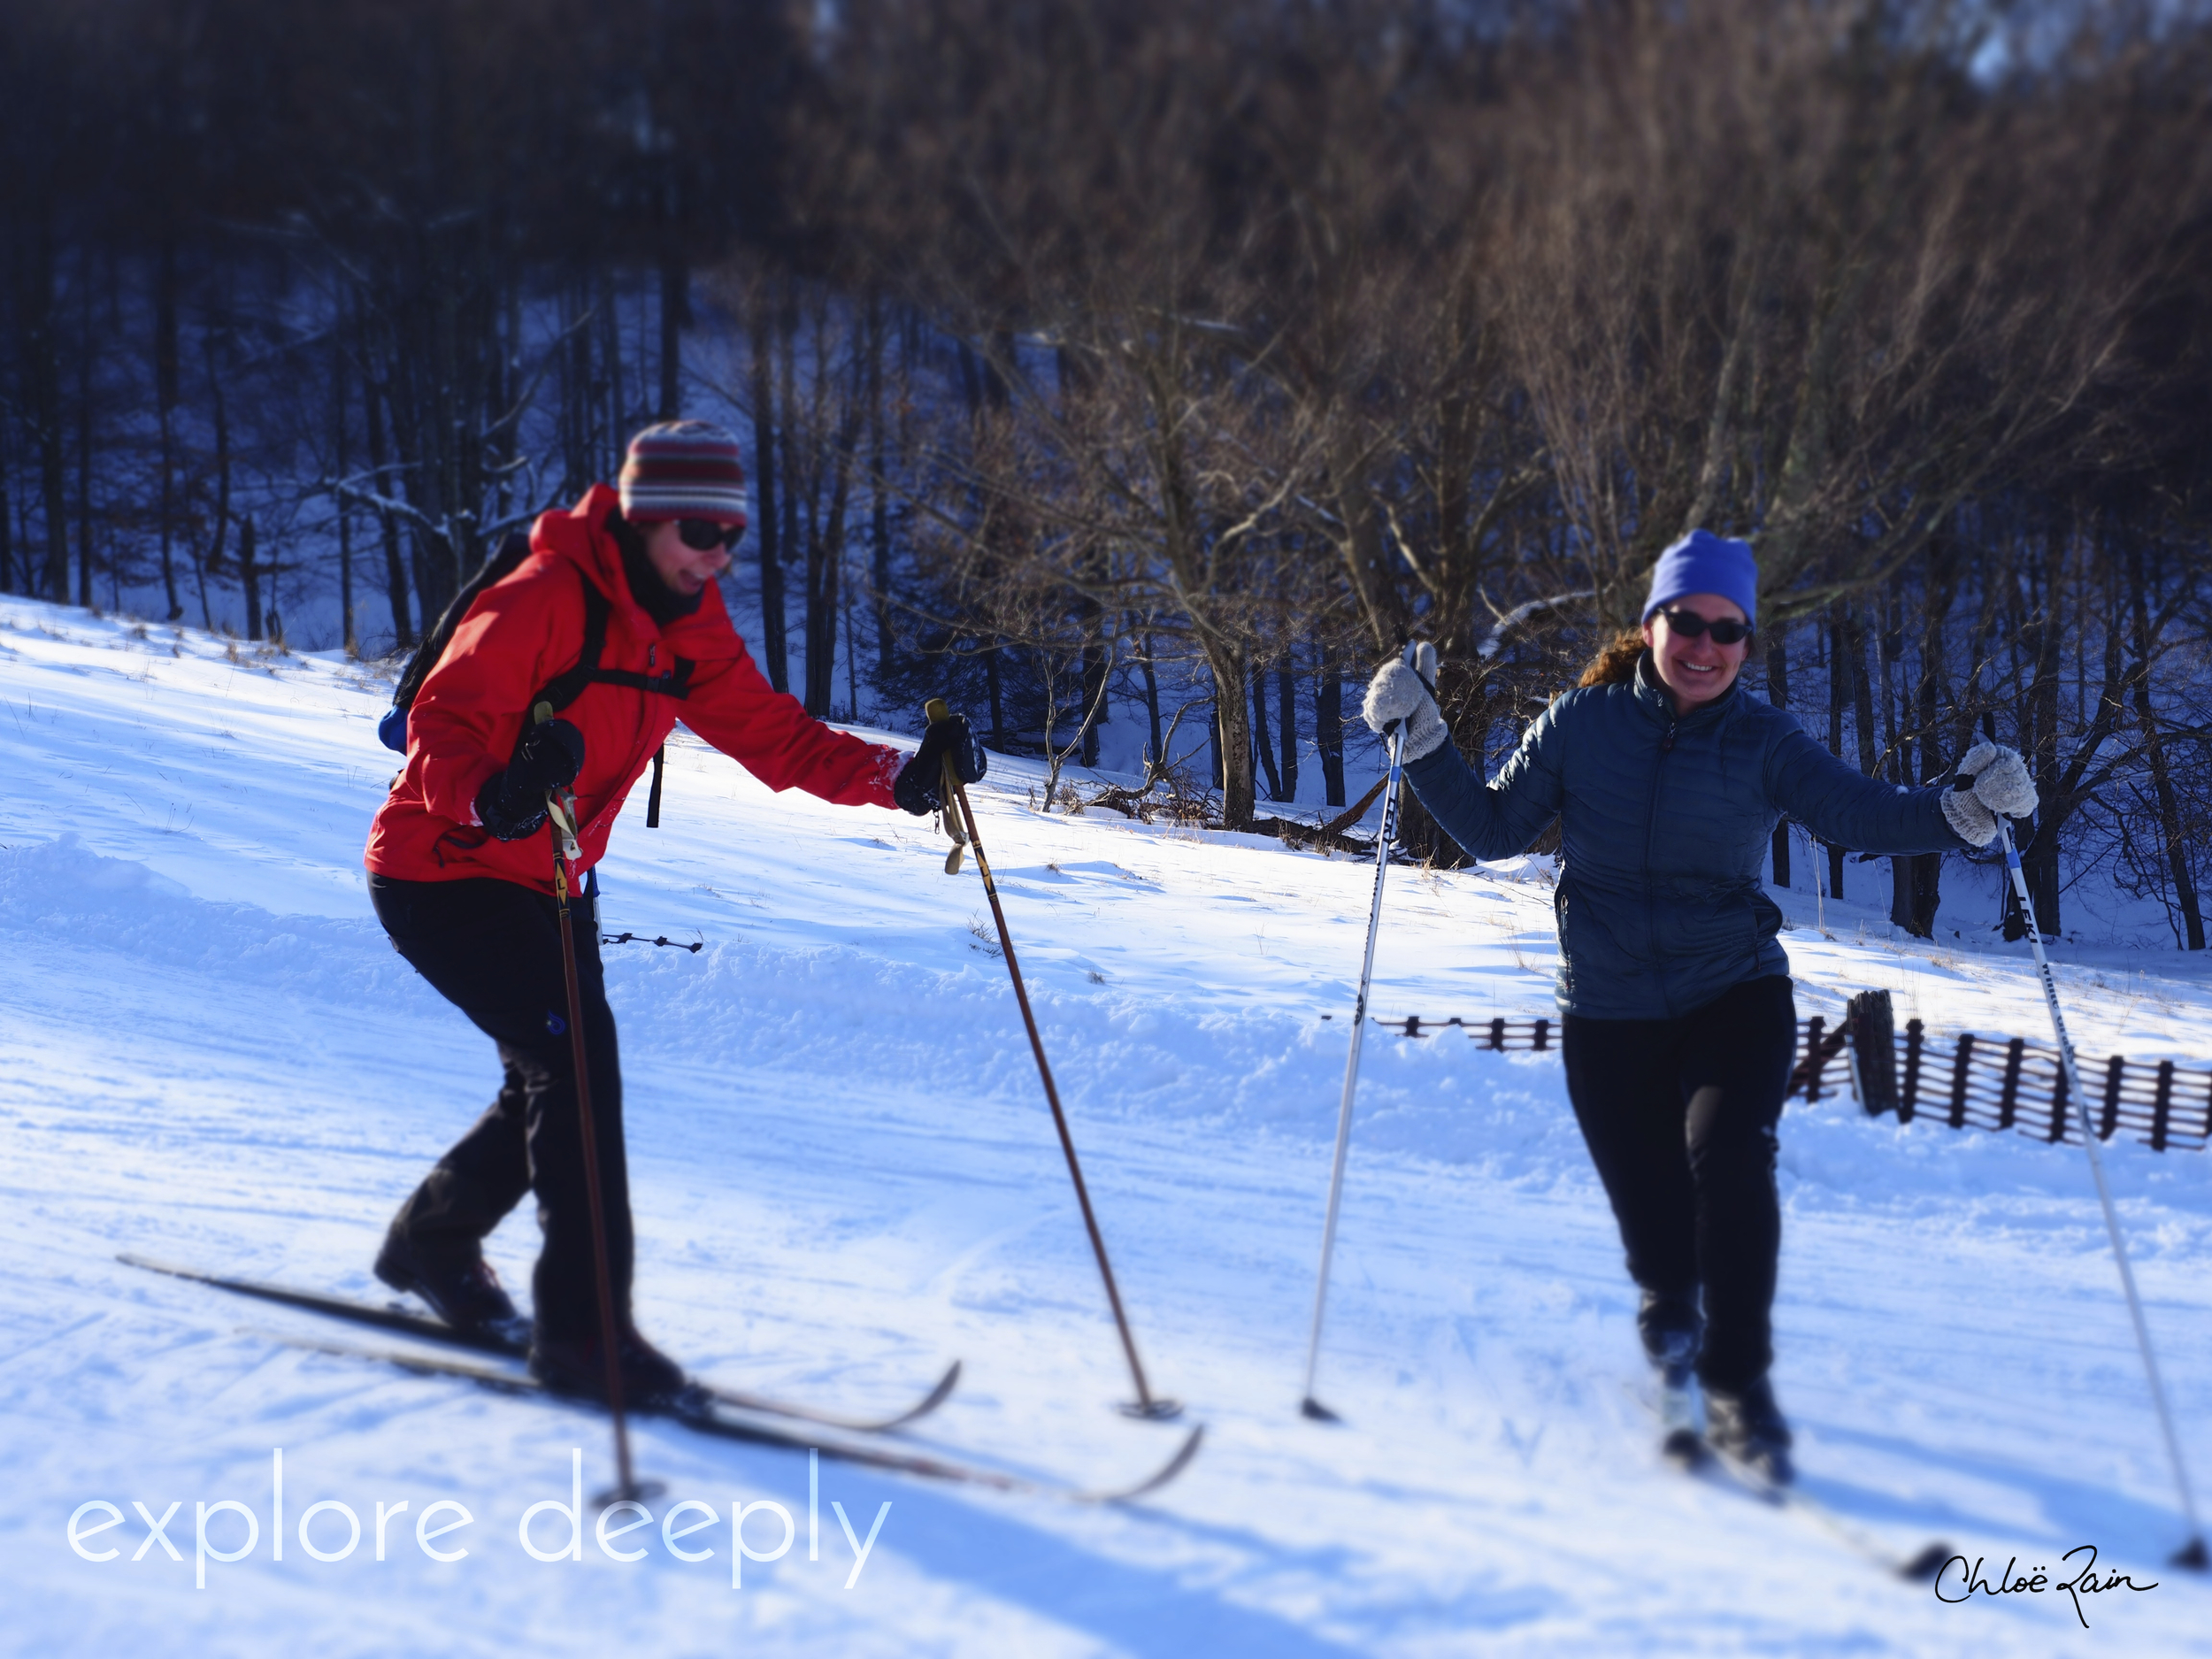 Whitegrass Ski Touring Center